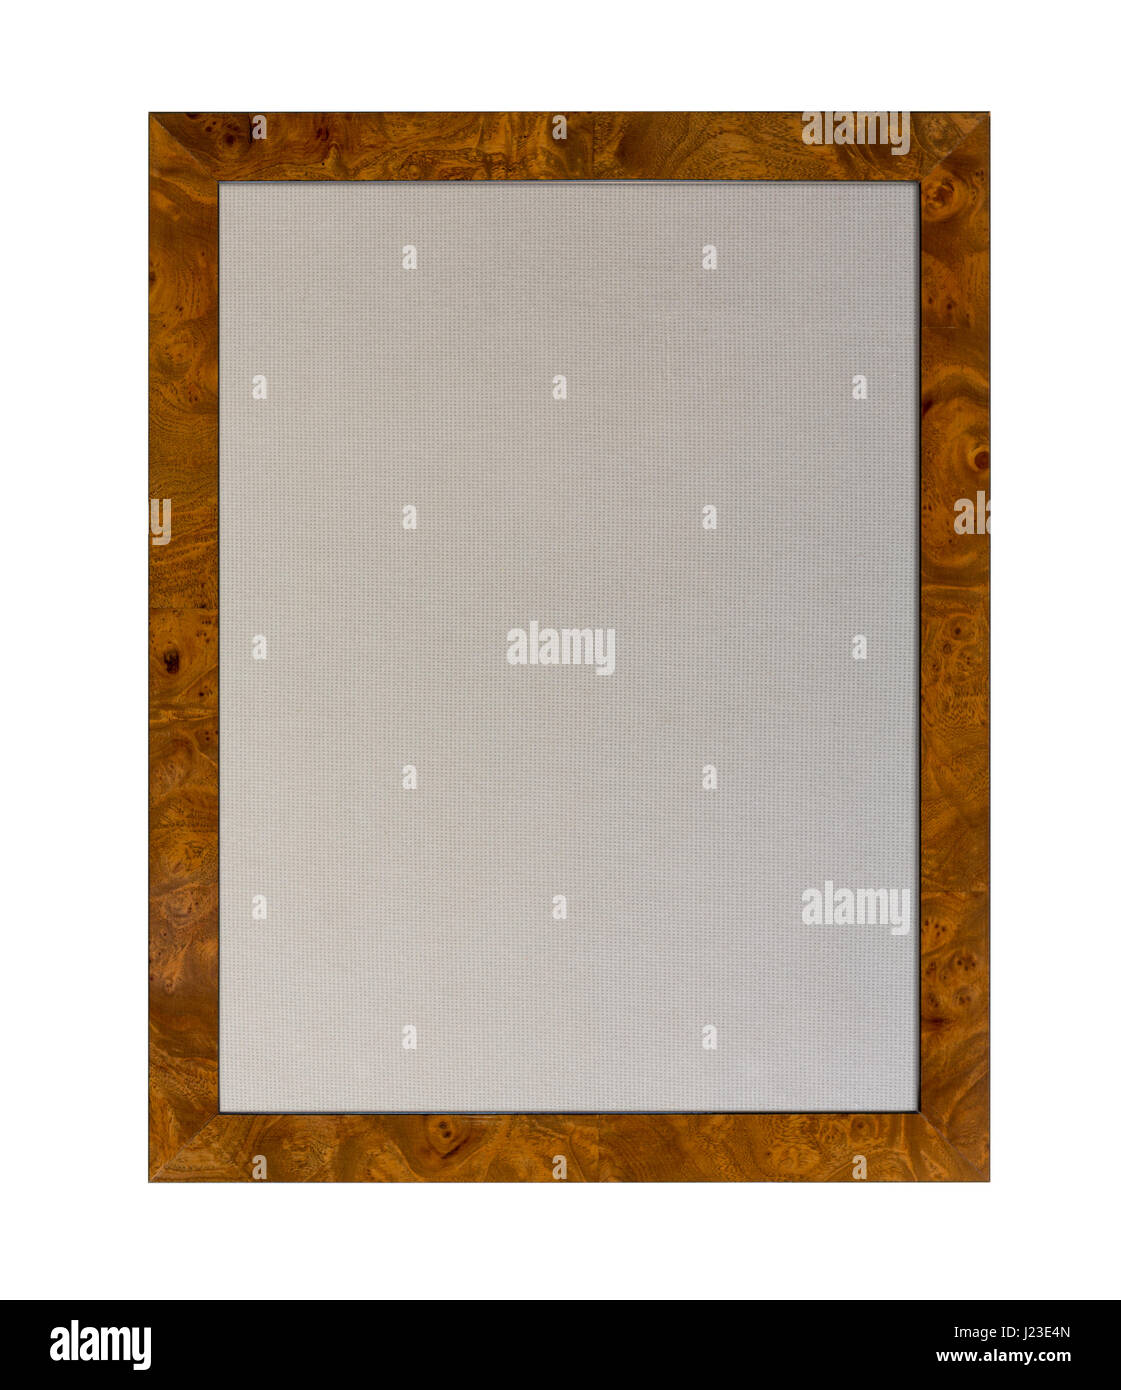 Cloth based pinboard or notice board inside a wooden picture frame isolated on white background Stock Photo